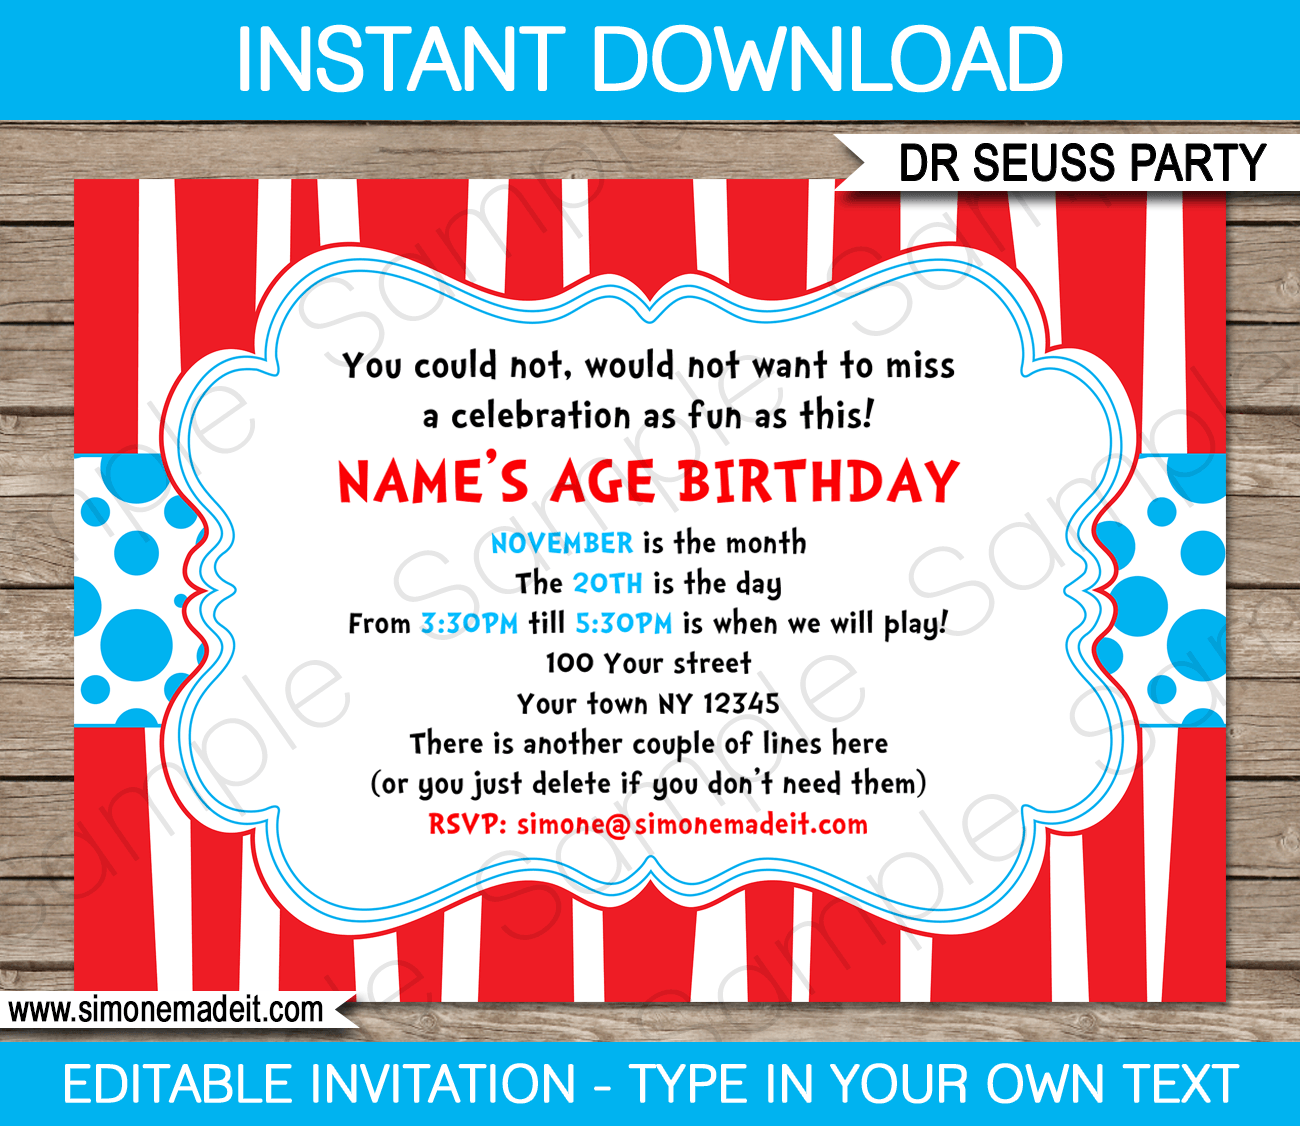 Dr Seuss Party Invitations Birthday Editable Diy Theme Template Instant 7 50